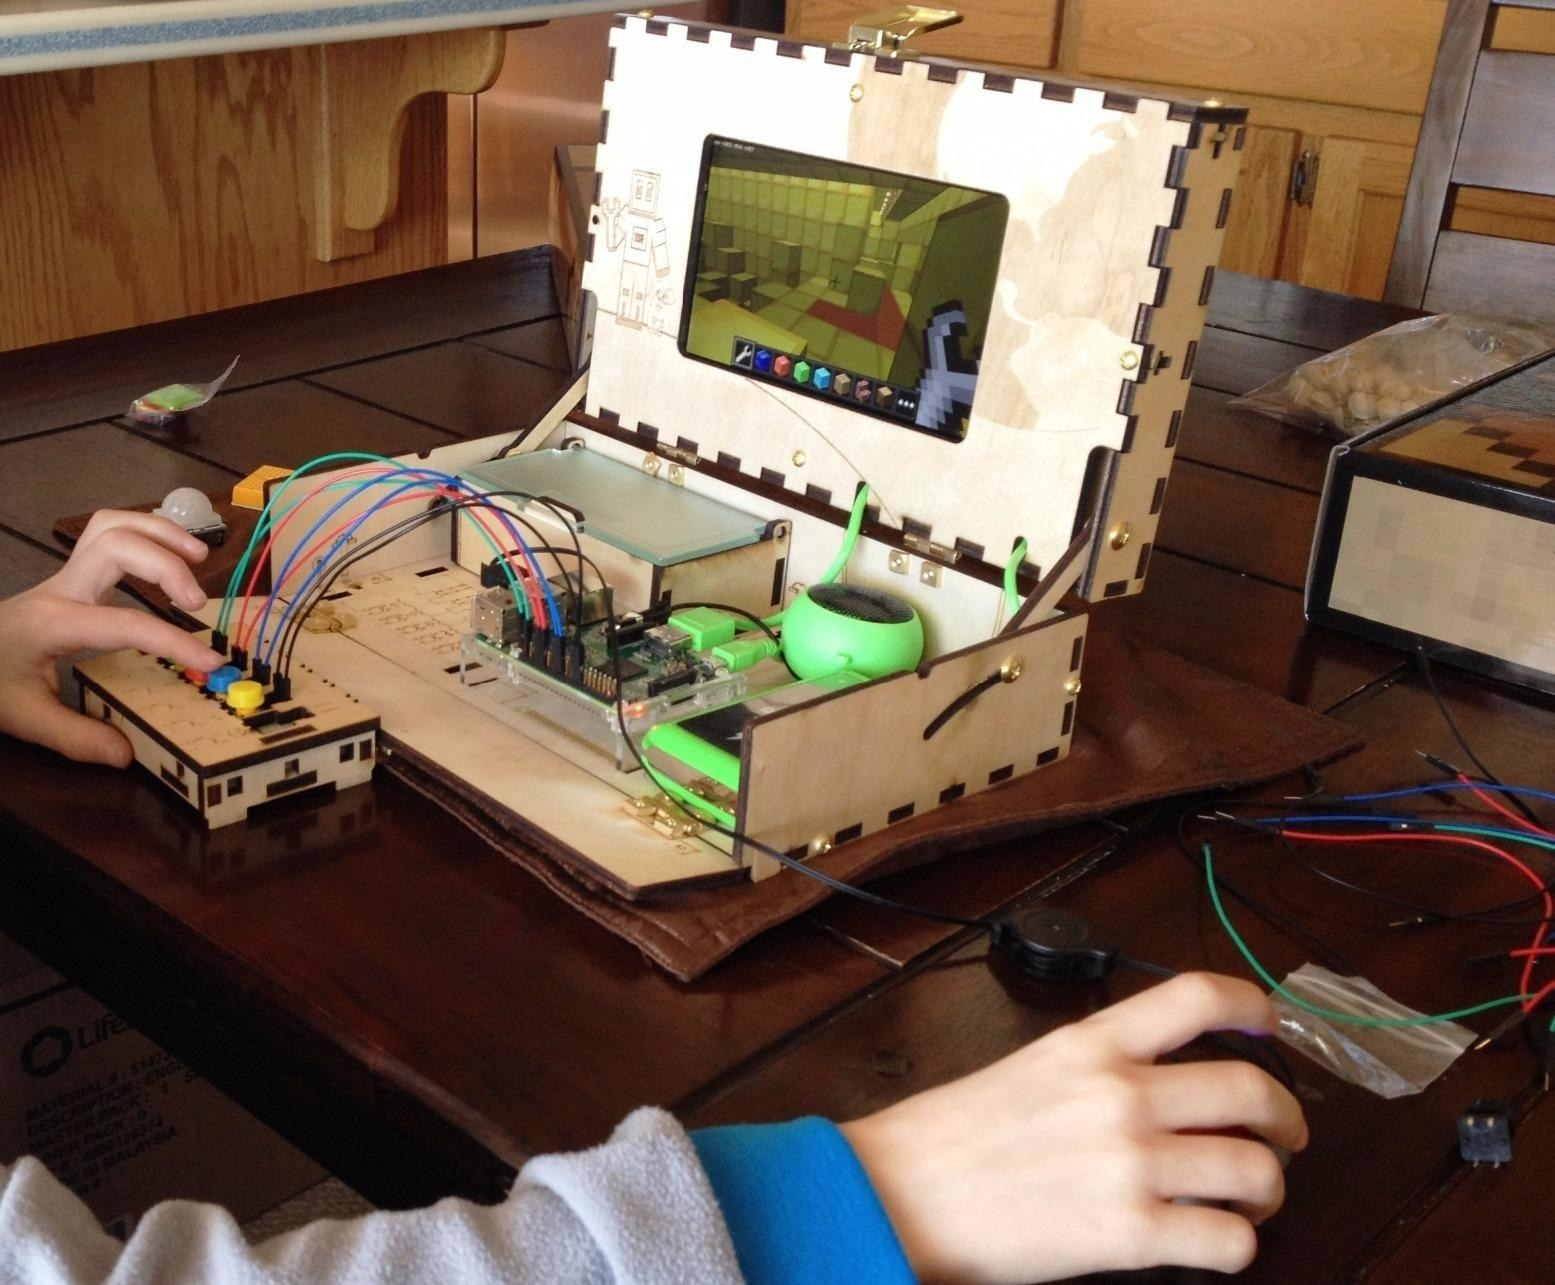 A reviewer's kid using the DIY computer, which looks like a box with wires attached and functioning buttons and a screen